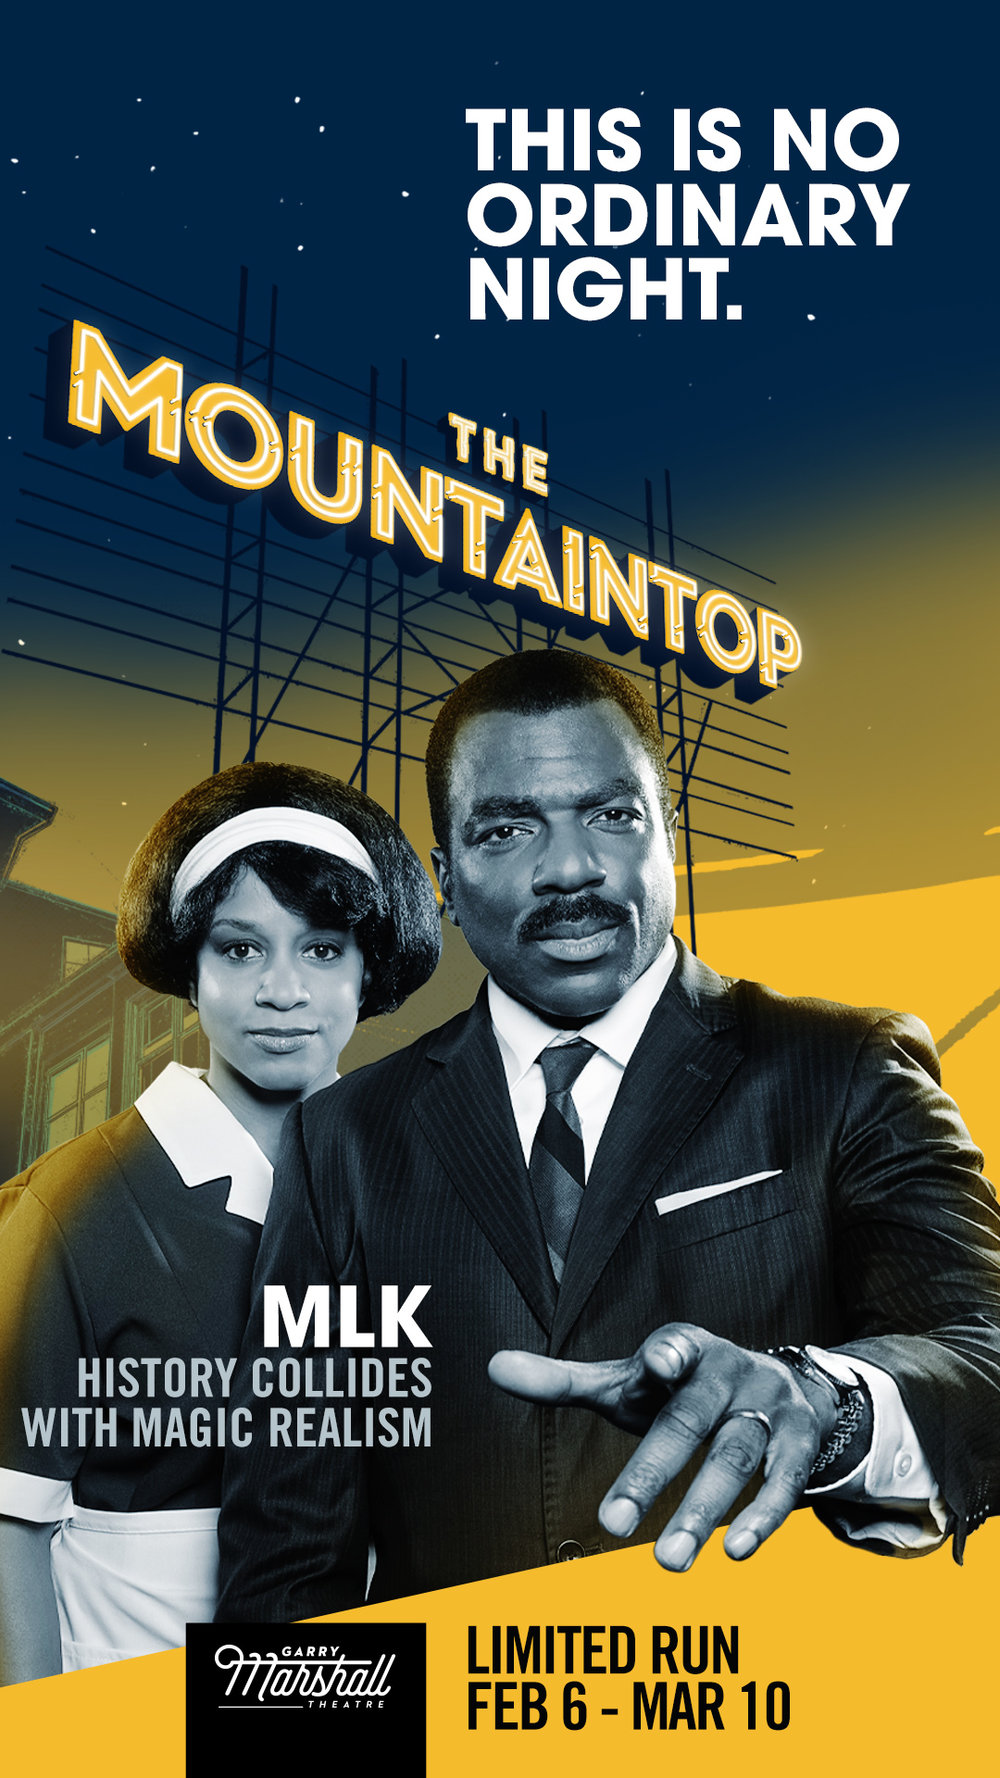 Pictured: Carolyn Ratteray (as Camae), Gilbert Glenn Brown (as Dr Martin Luther King Jr), Photograph by Lorenzo Hodges